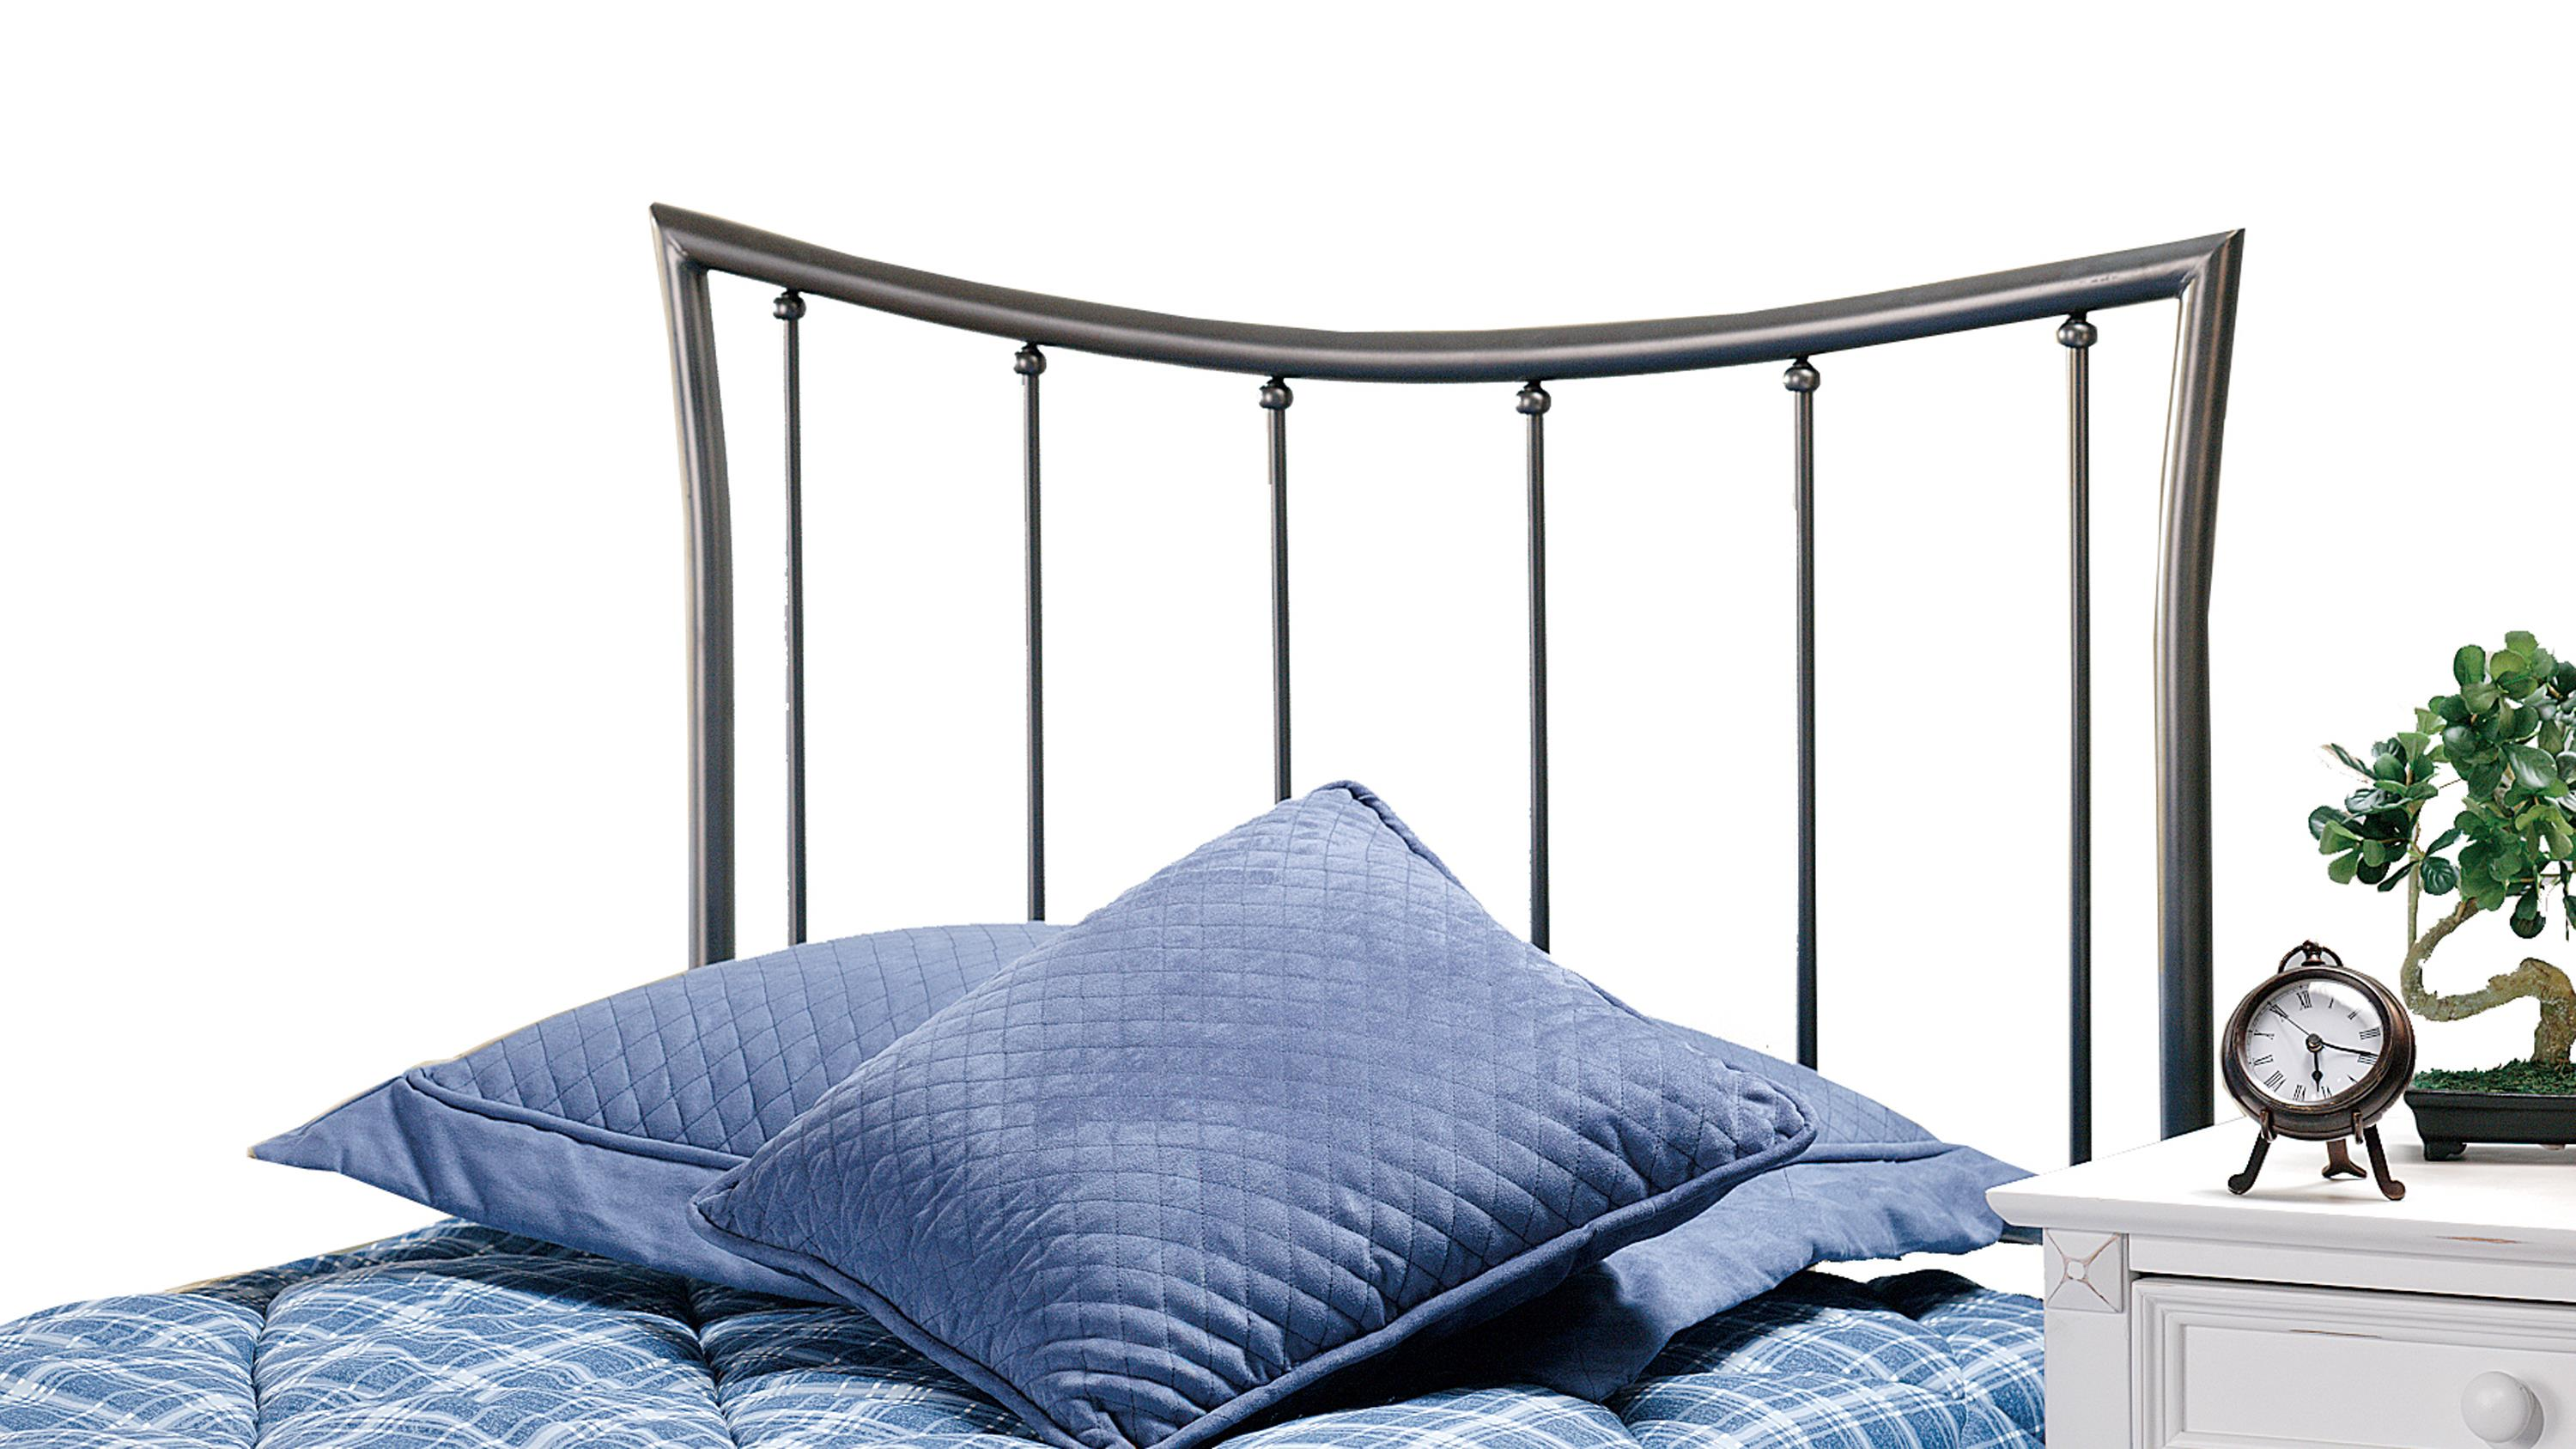 Hillsdale Metal Beds Edgewood Full/Queen Headboard with Rails - Item Number: 1333HFQR